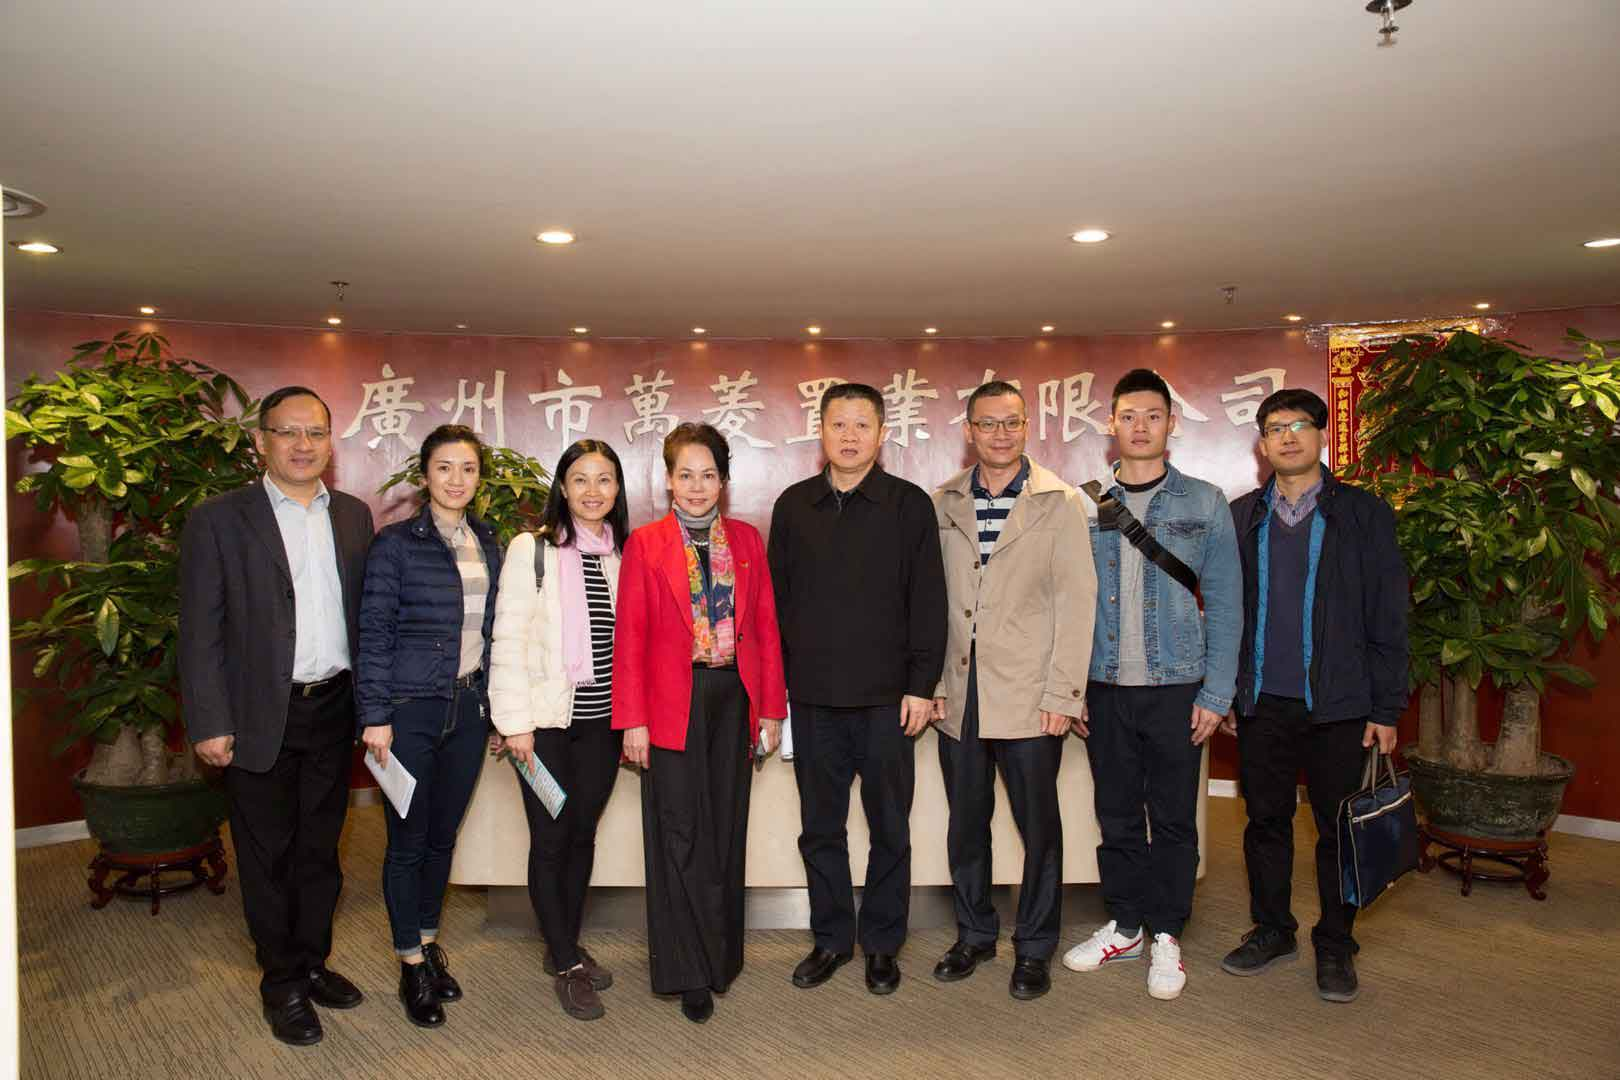 Delegation of Standing Committee of Chengdu Municipal People's Congress of Sichuan Province visited Wanling people's Congress Liaison Station for guidance